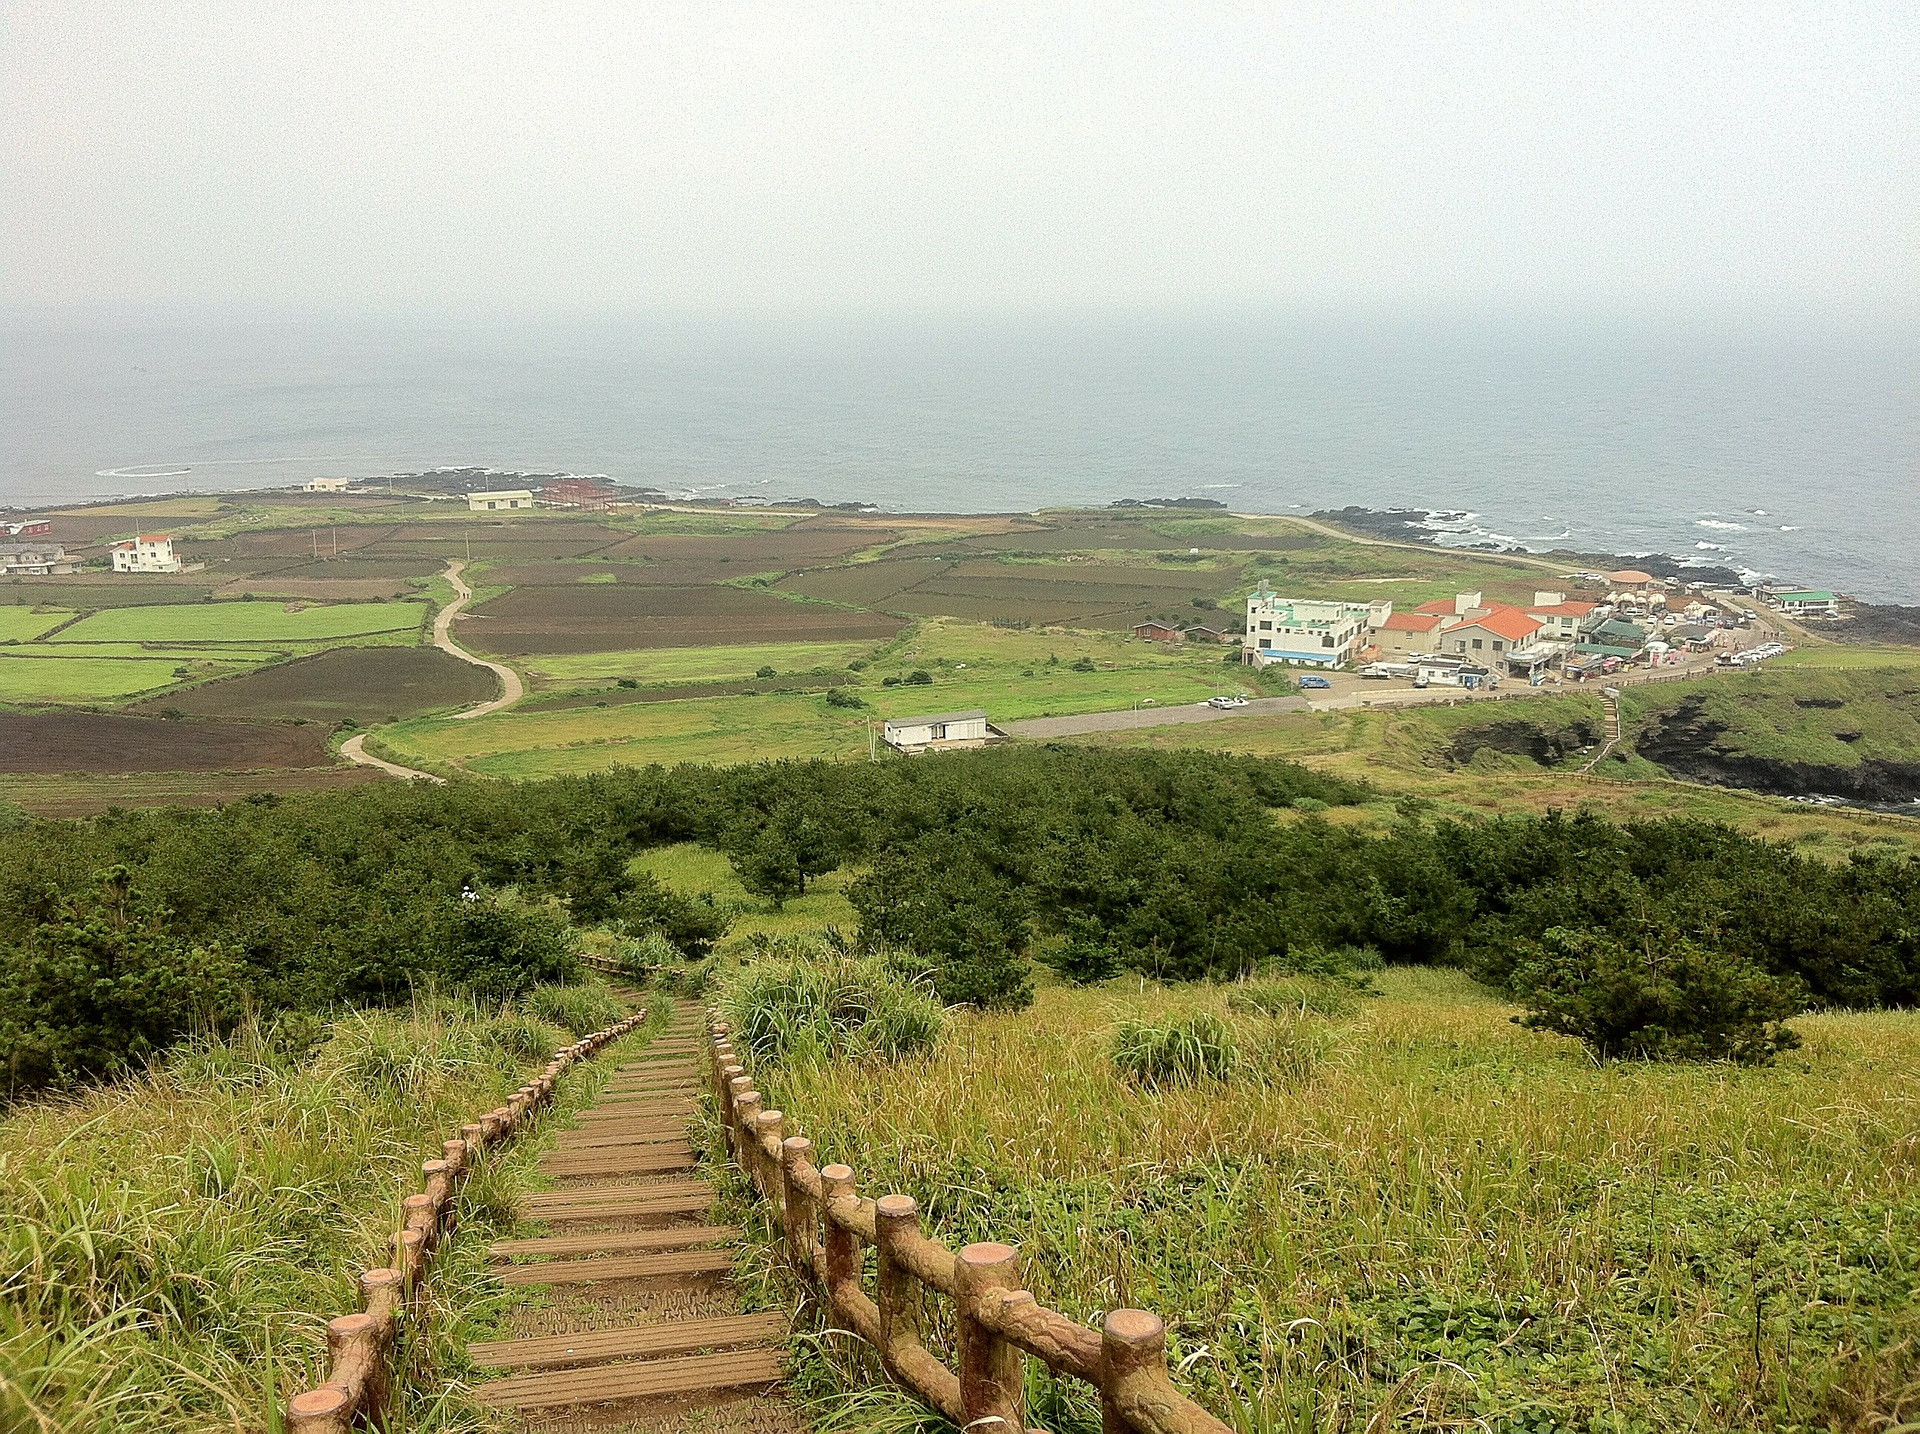 Landscape of Jeju island showing a walkway through the countryside.